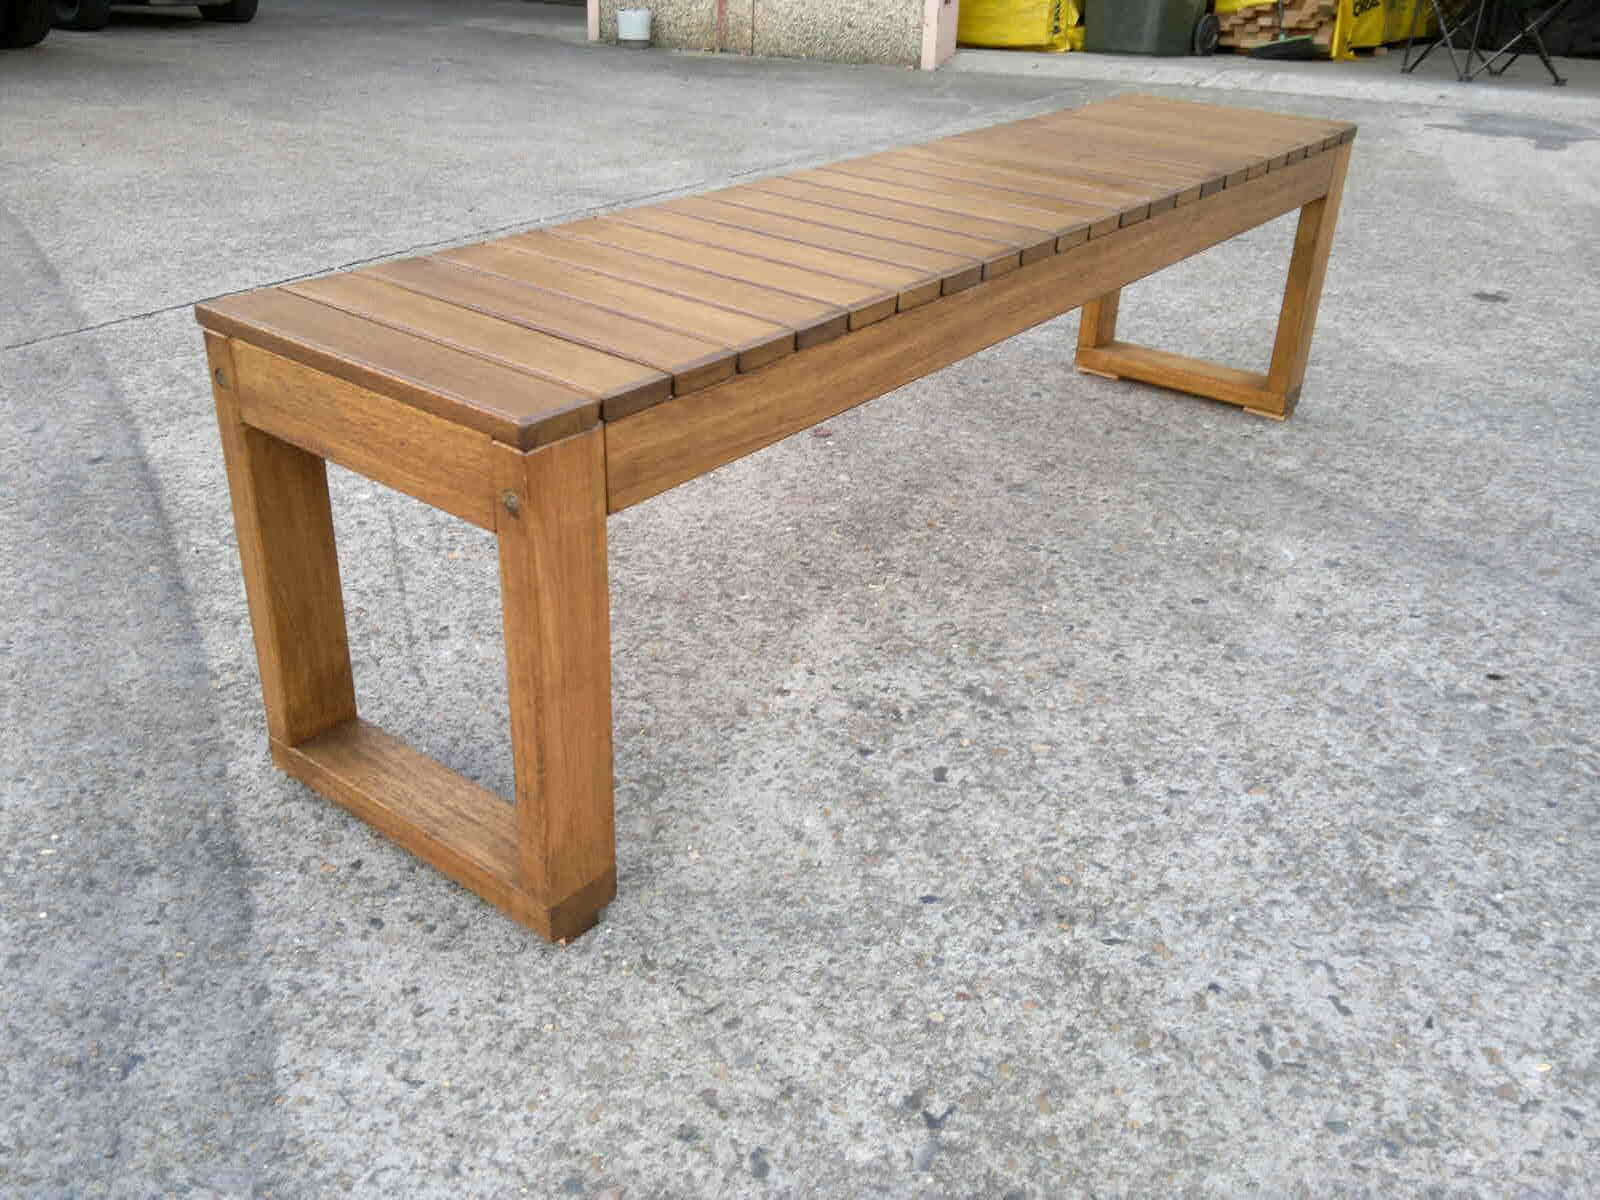 Ideas For Special Garden Outdoor Bench Seats Wood Bench Outdoor Wood Bench Seat Diy Bench Seat